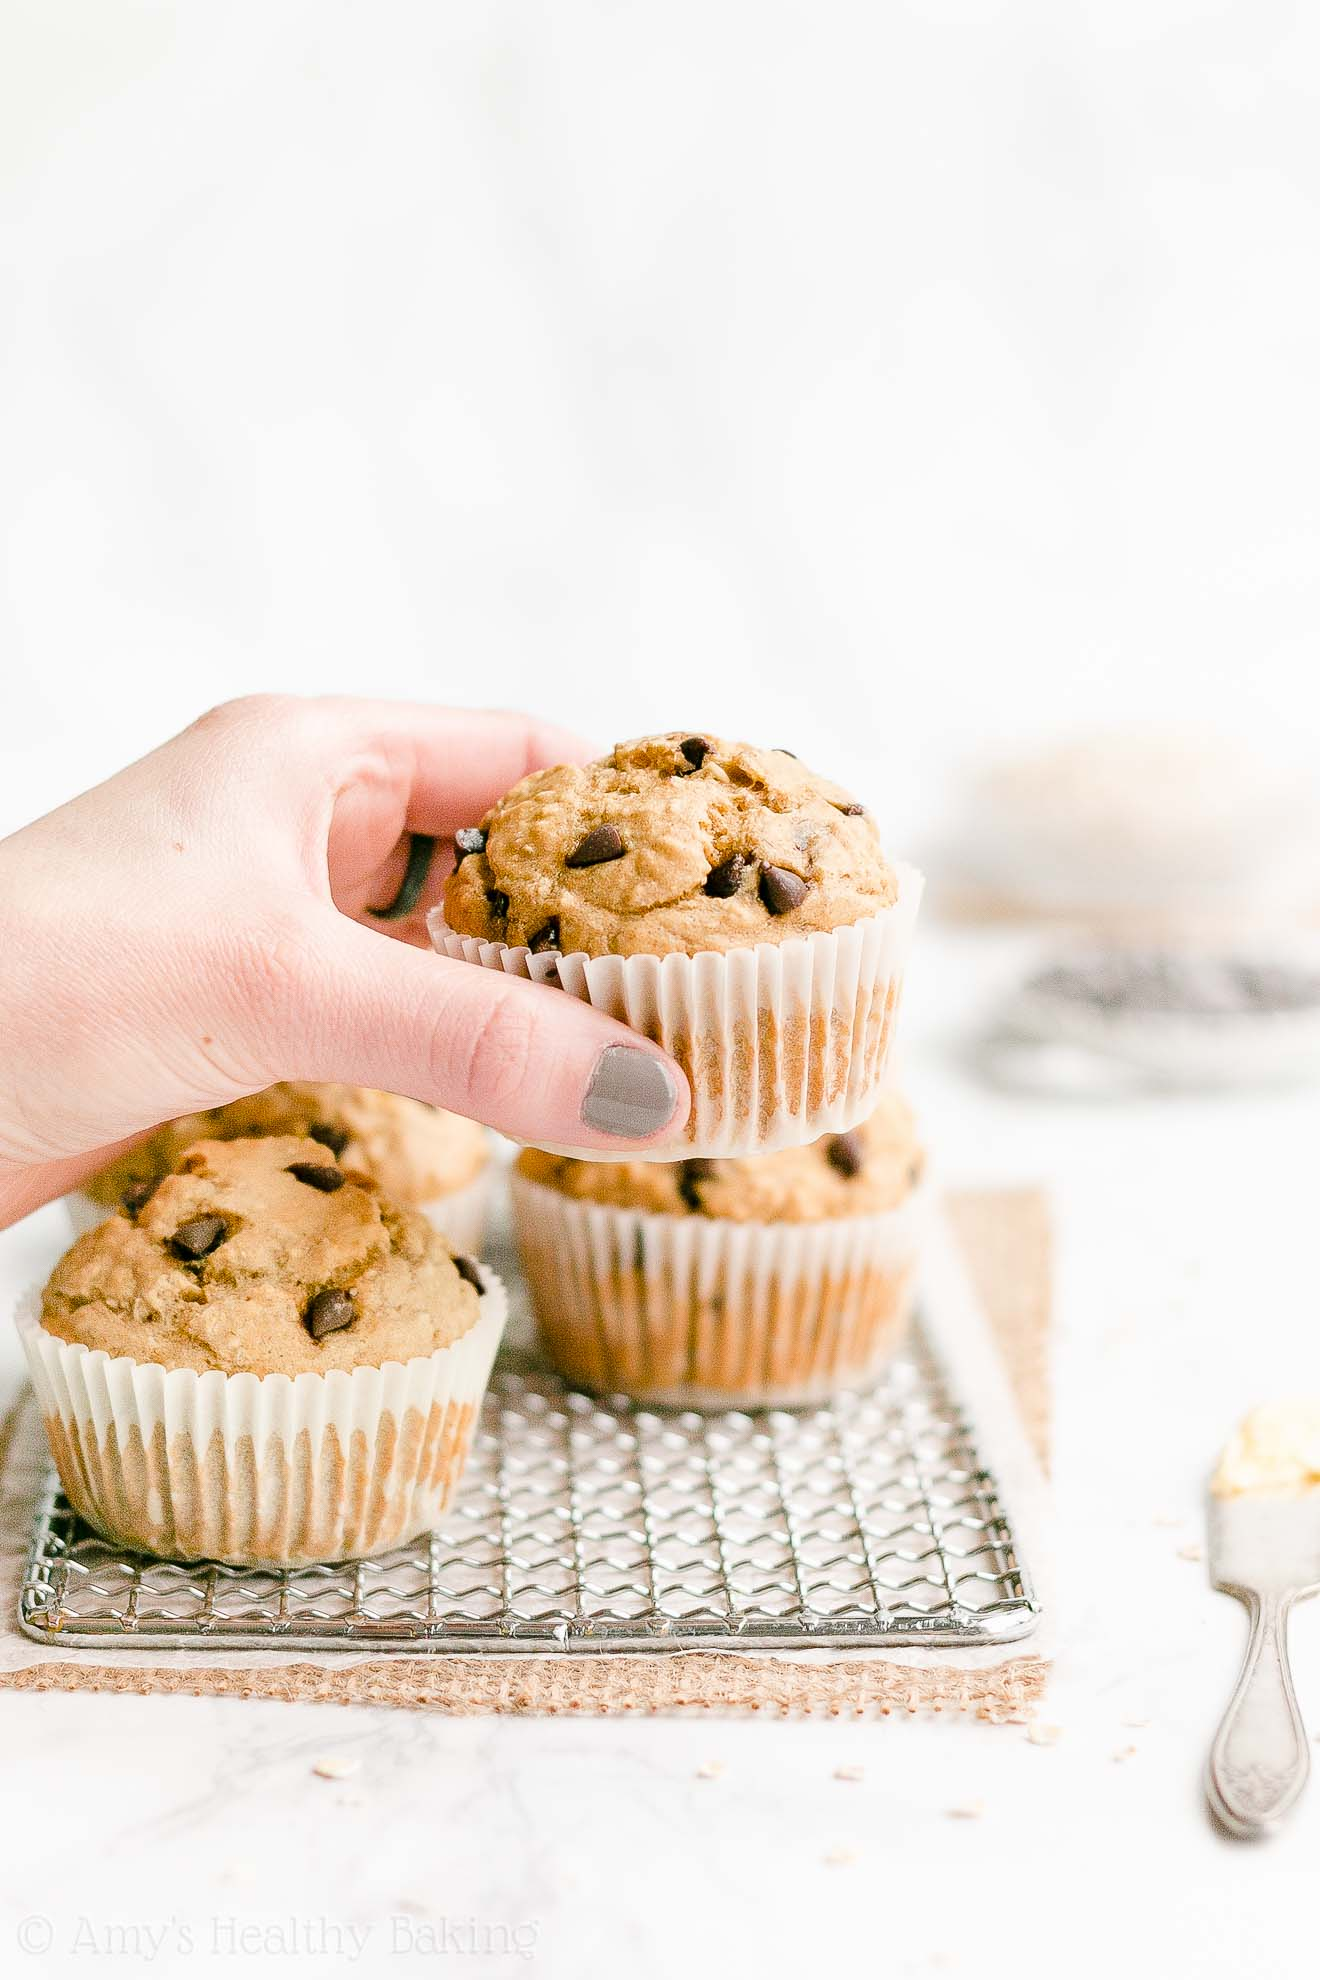 Best Easy Healthy Gluten Free Low Fat Banana Chocolate Chip Oatmeal Muffins